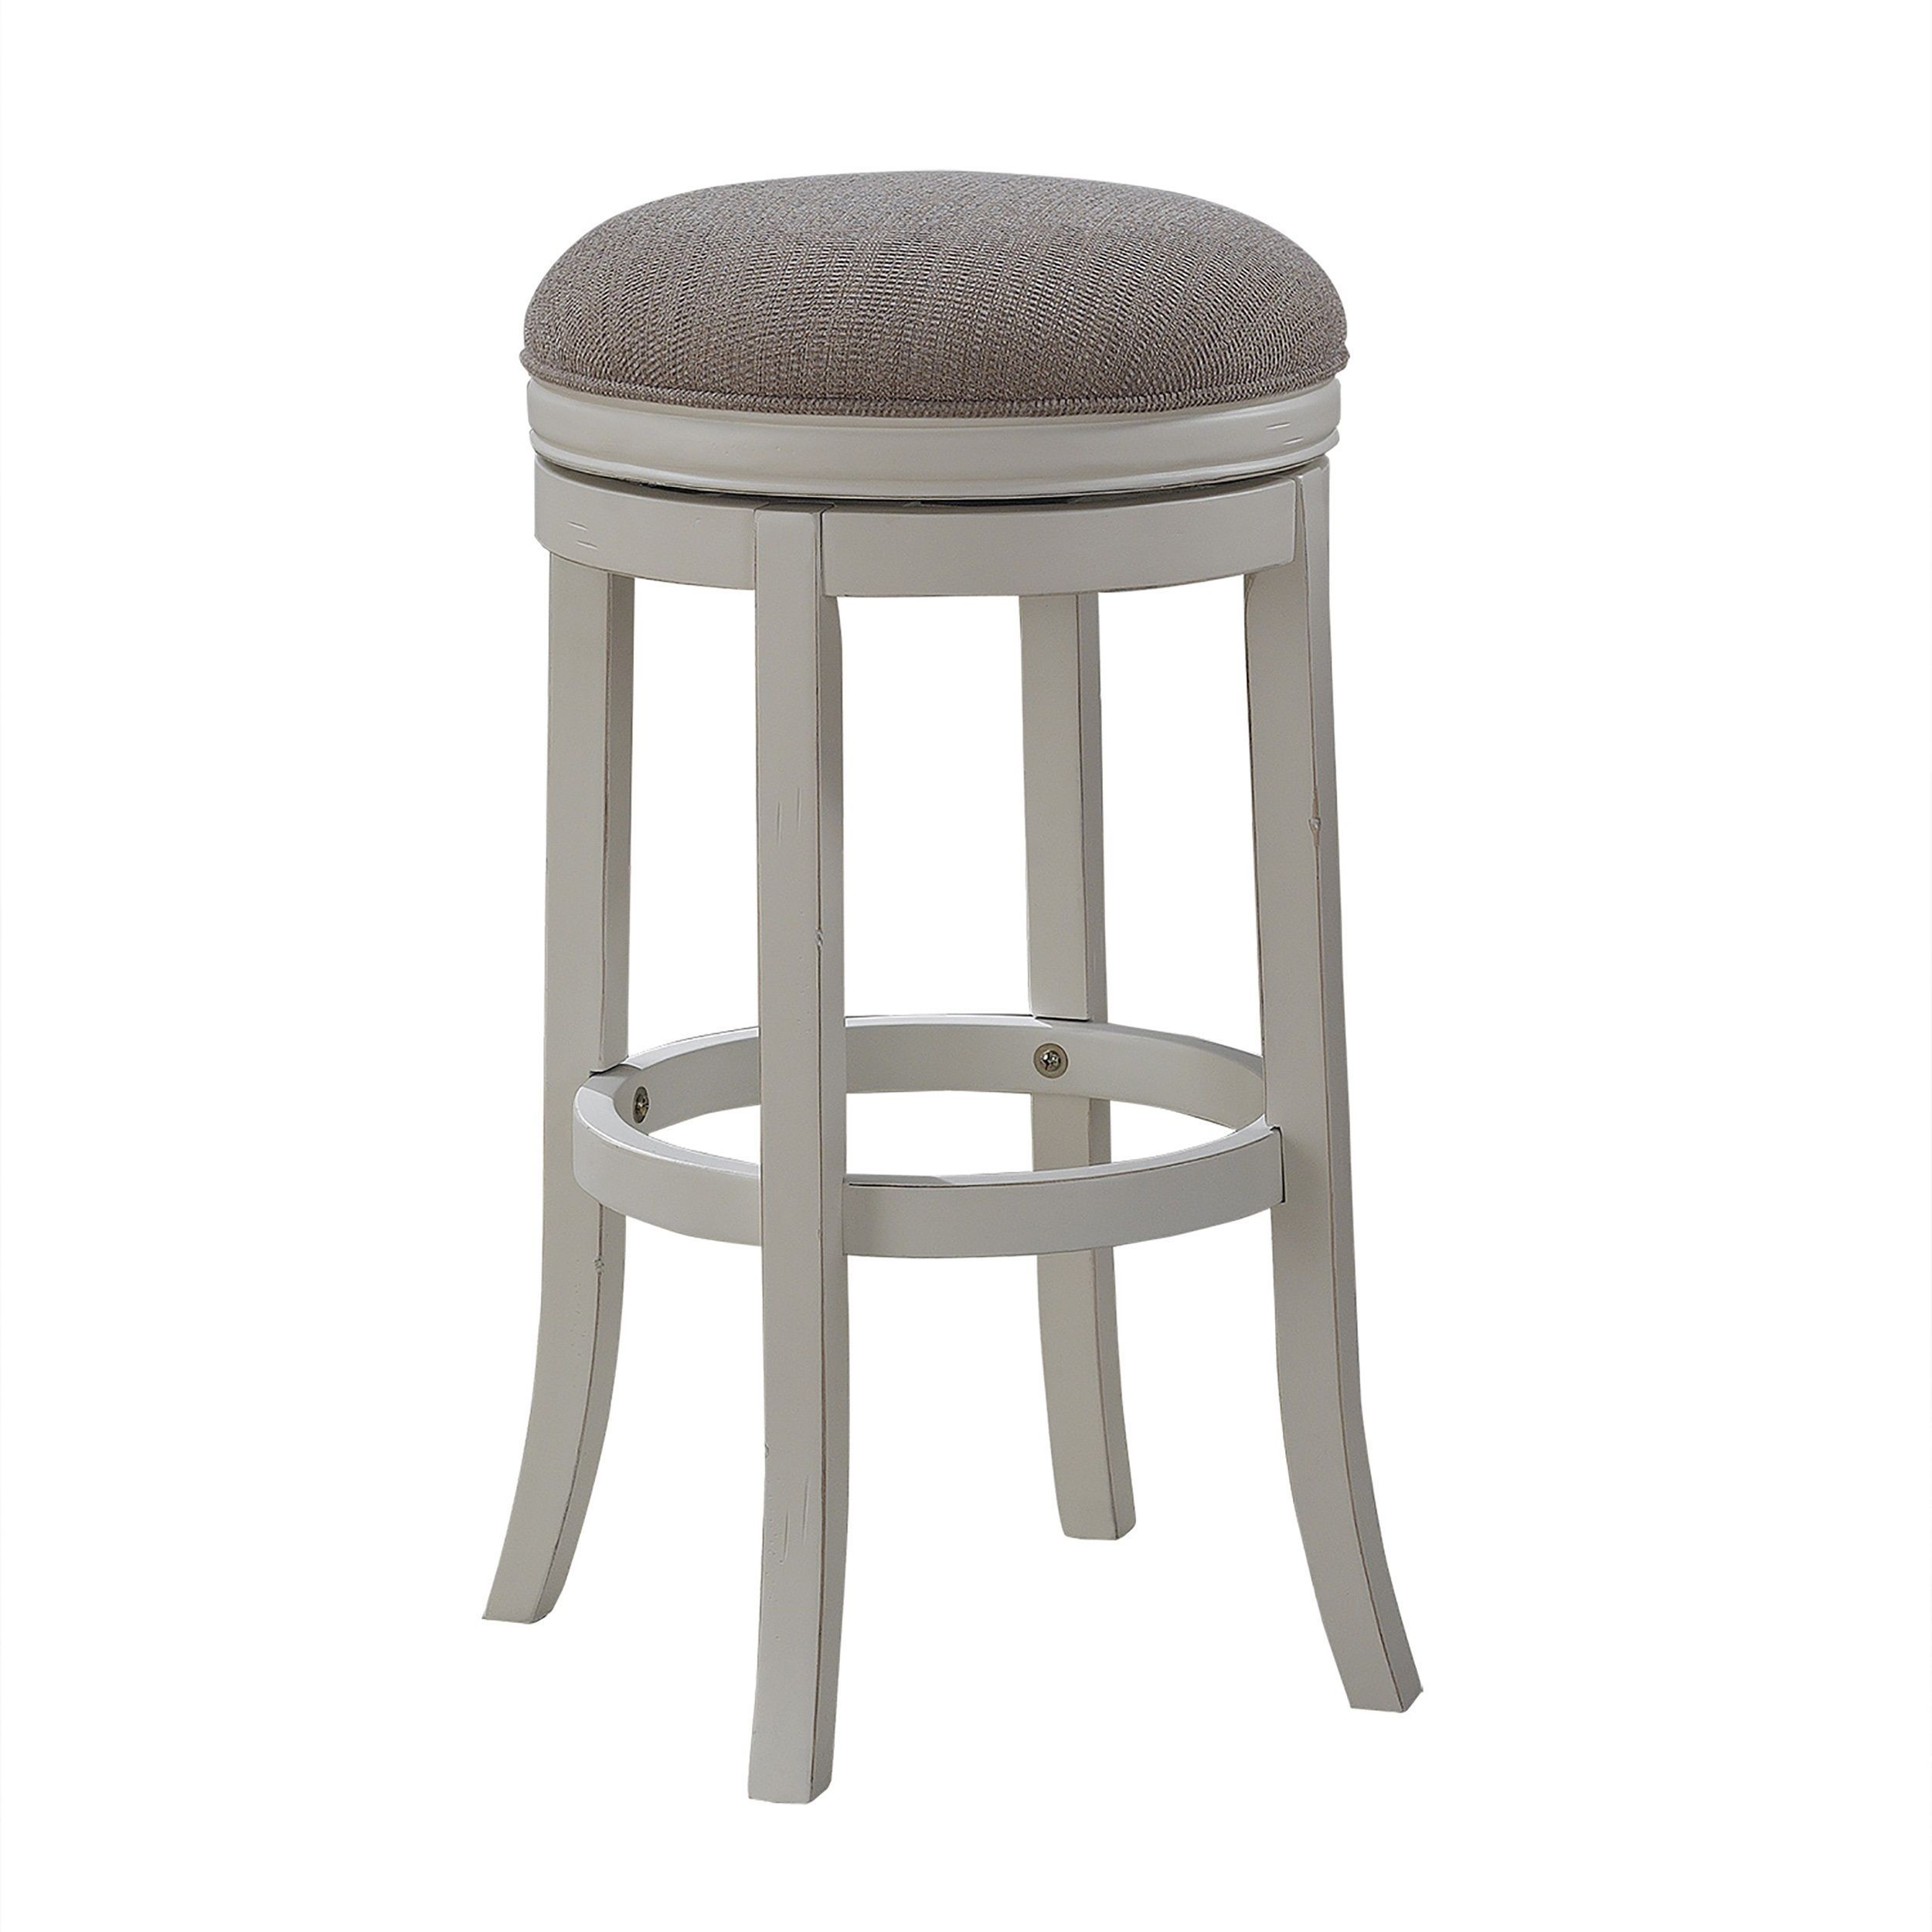 The coastal style of the pesaro counter stool is evident in the distressed antique white finish Counter seating